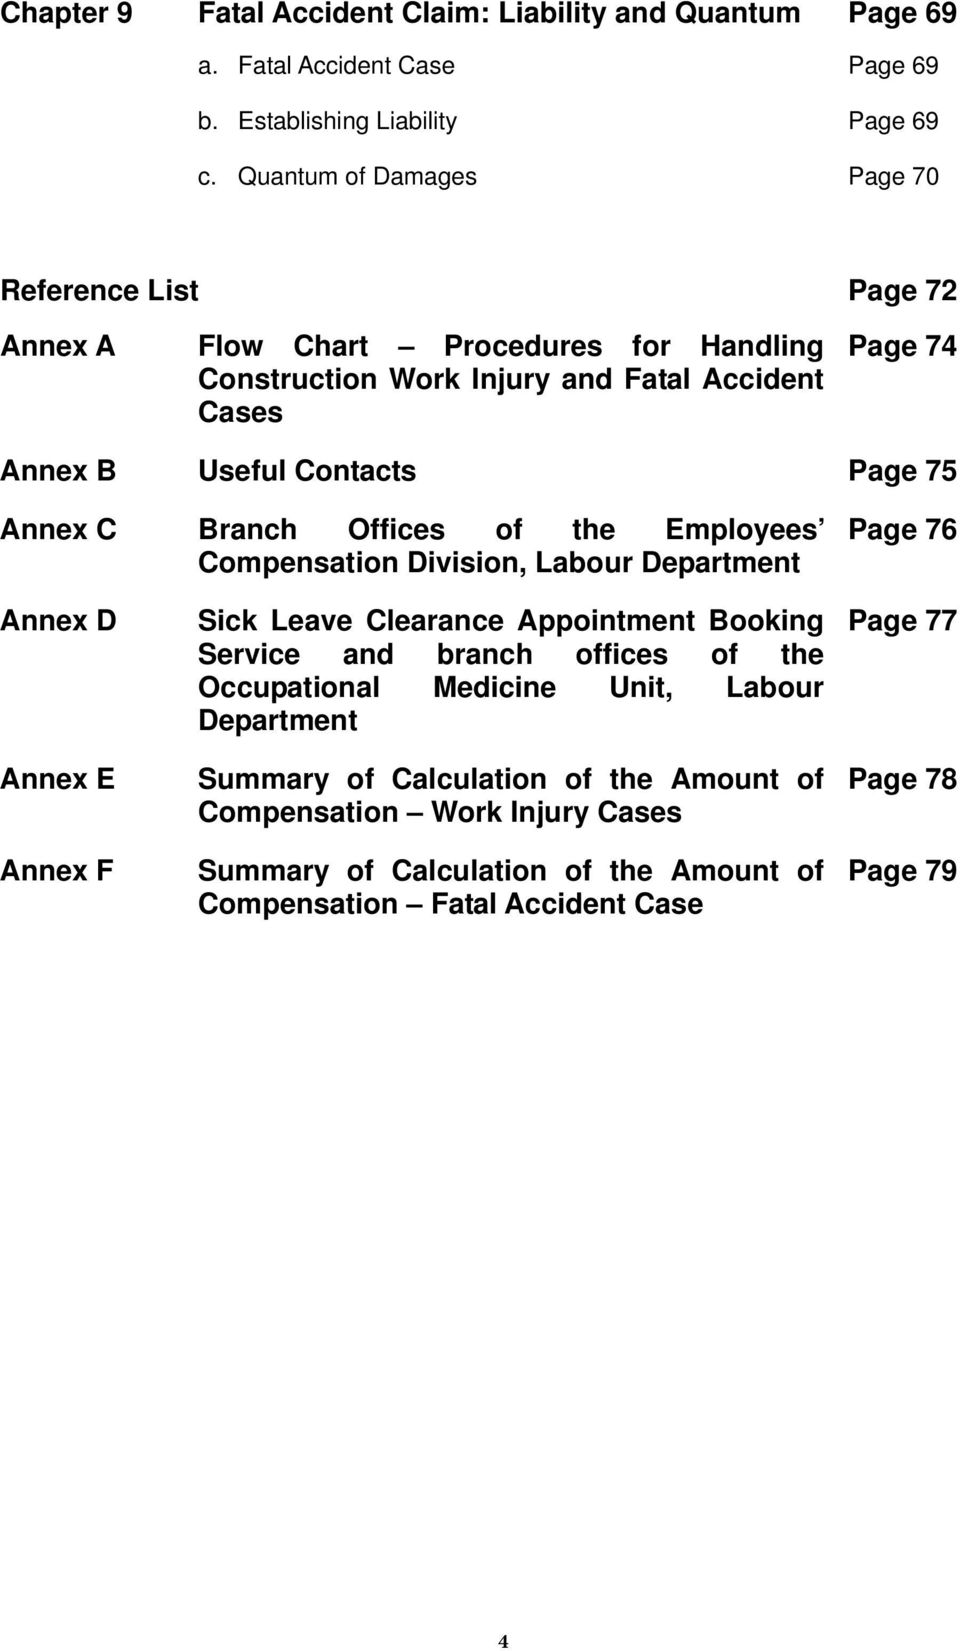 C Branch Offices of the Employees Compensation Division, Labour Department Page 76 Annex D Annex E Annex F Sick Leave Clearance Appointment Booking Service and branch offices